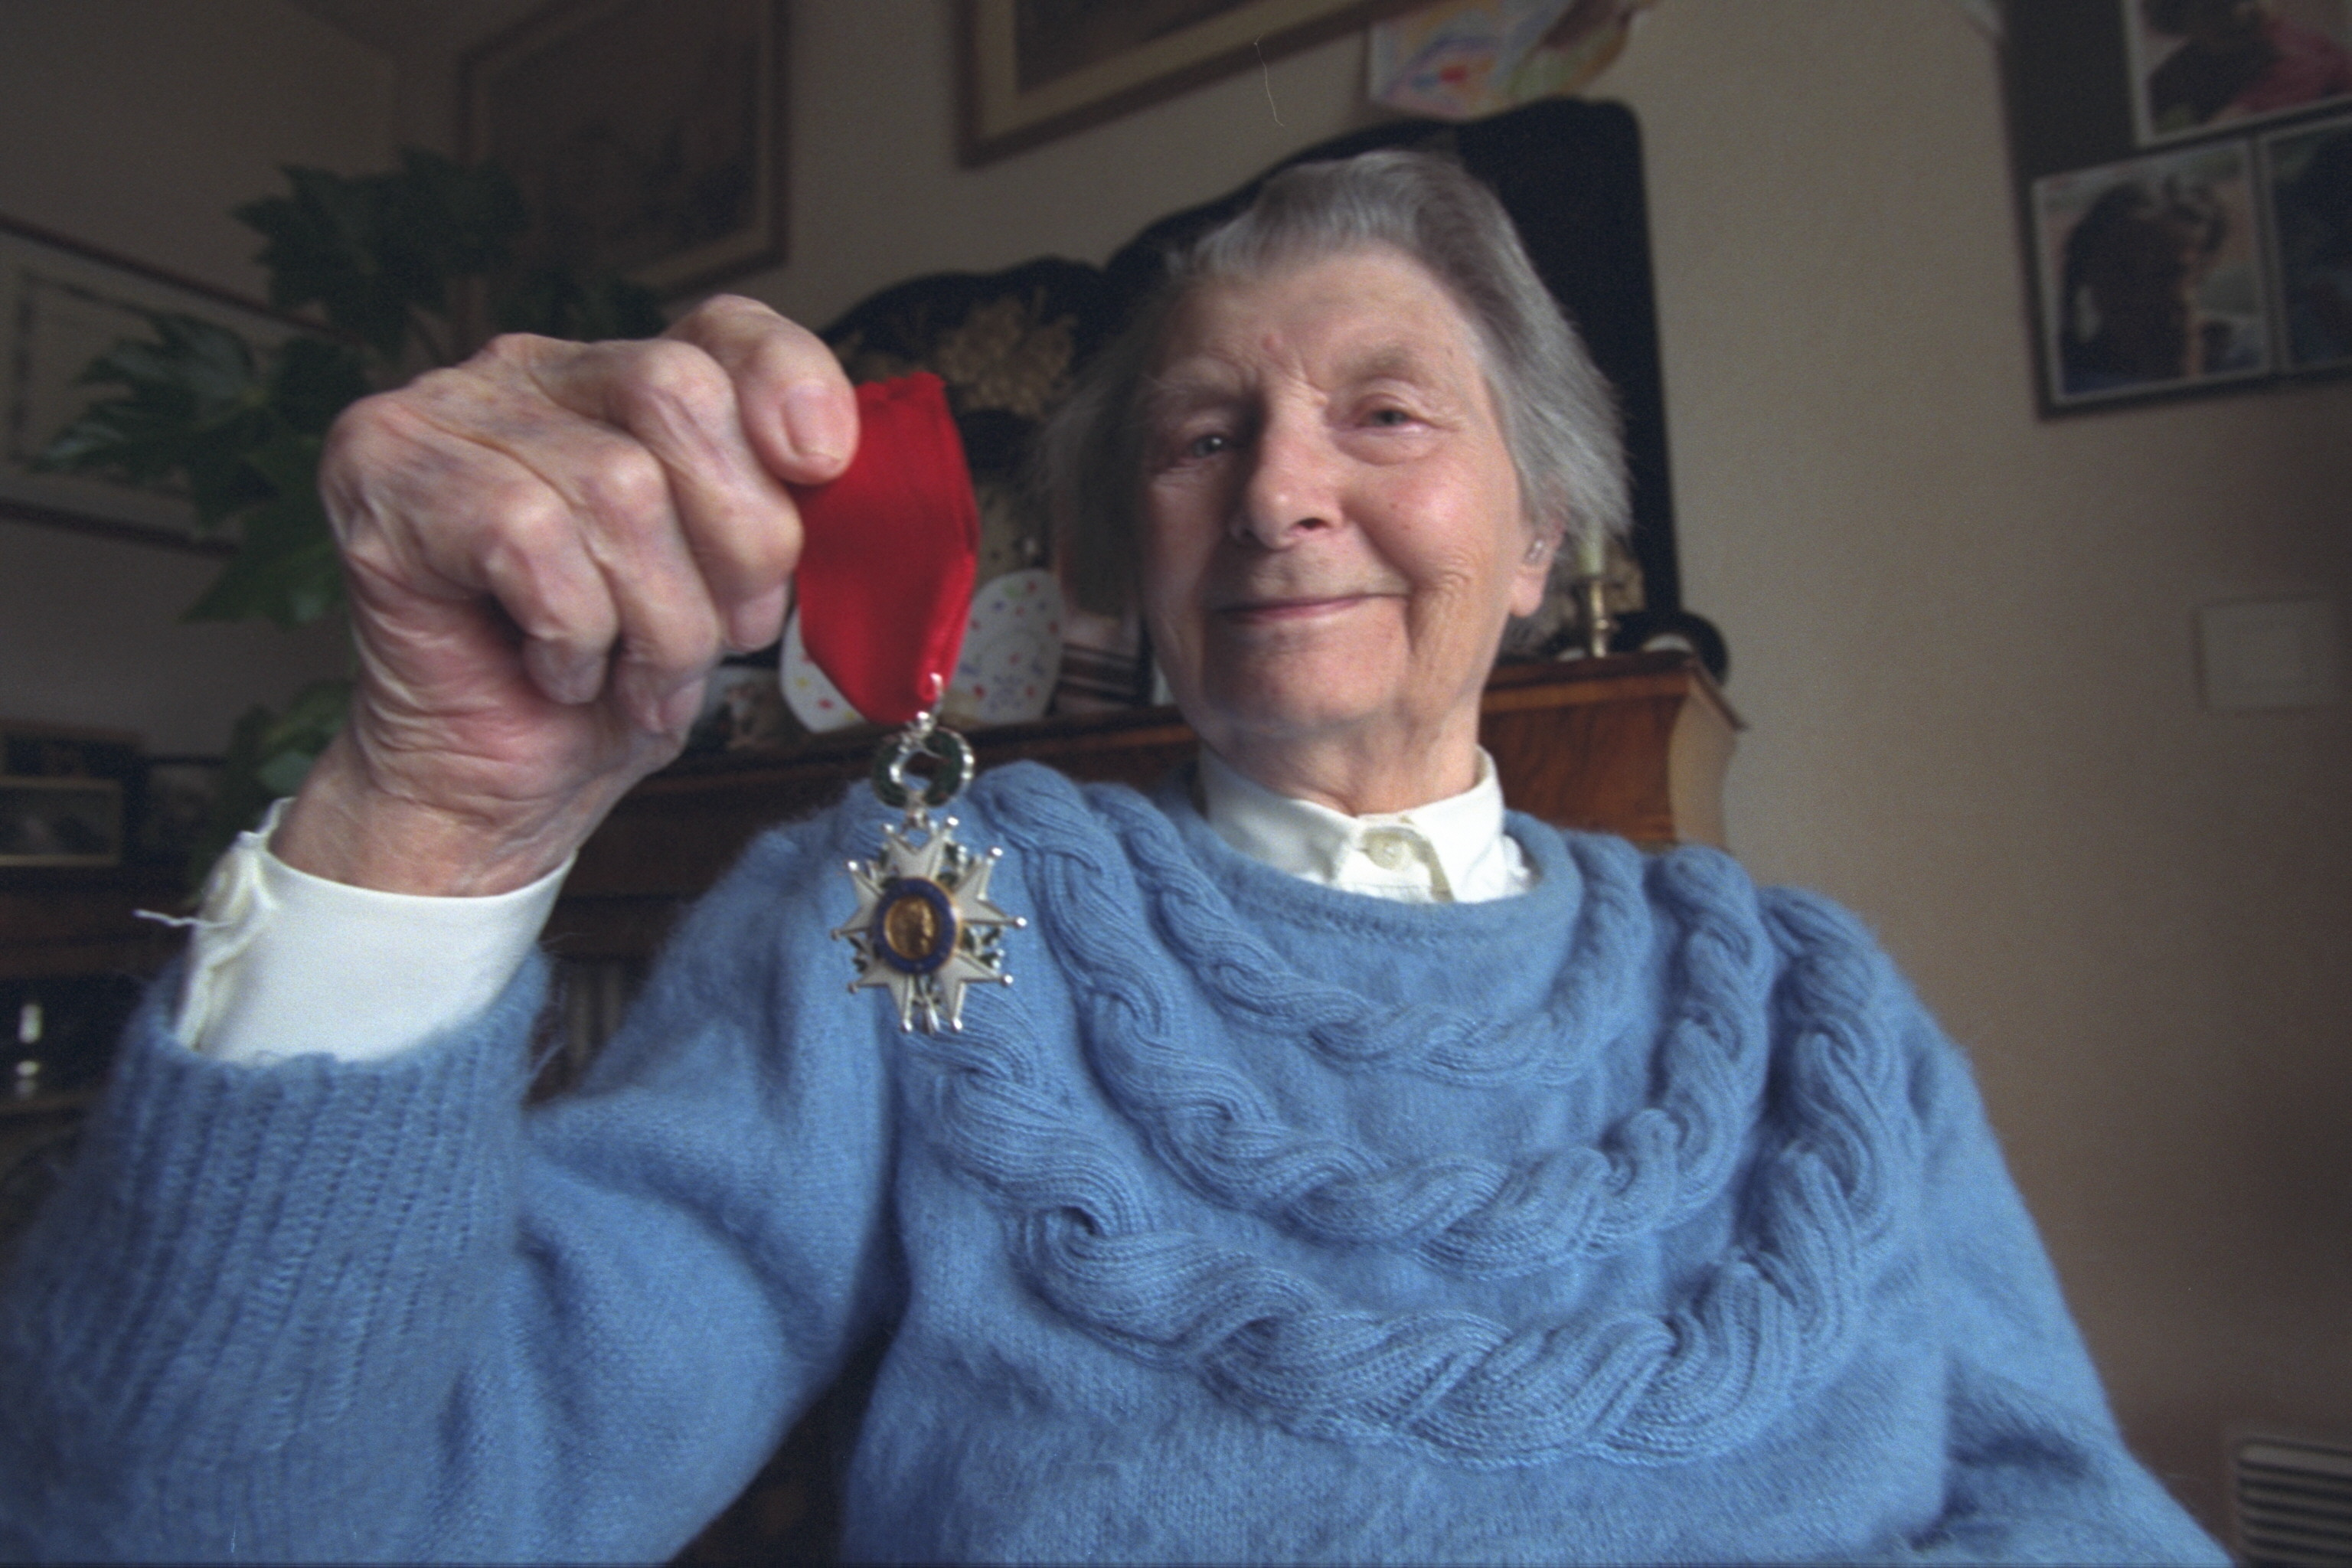 Susan Travers, the only woman to join the French Royal Legion, with her Legion of Honour medal. She died in 2003 aged 94